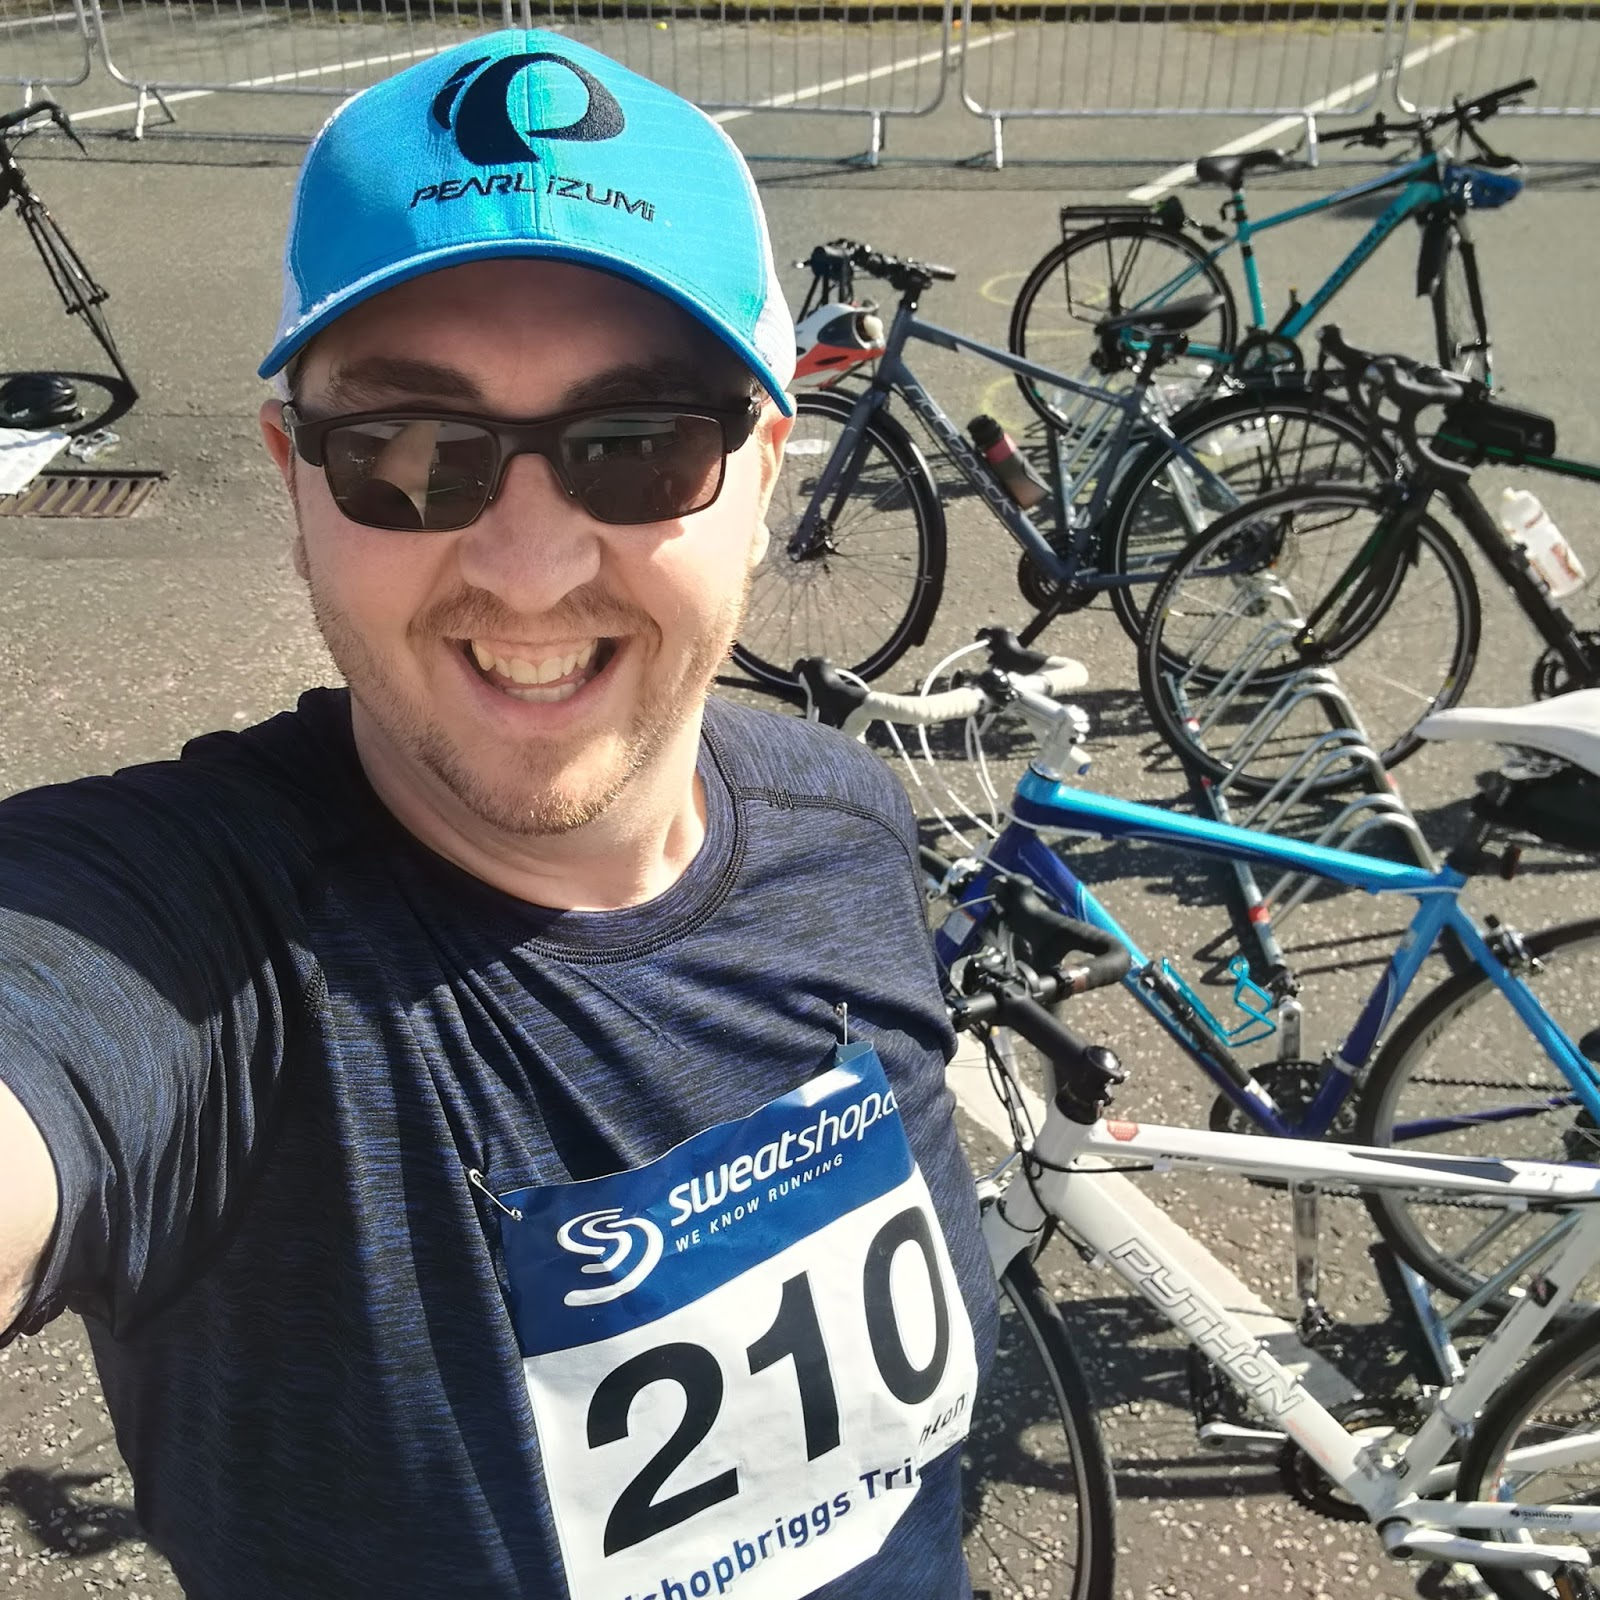 Bishopbriggs Sprint Triathlon